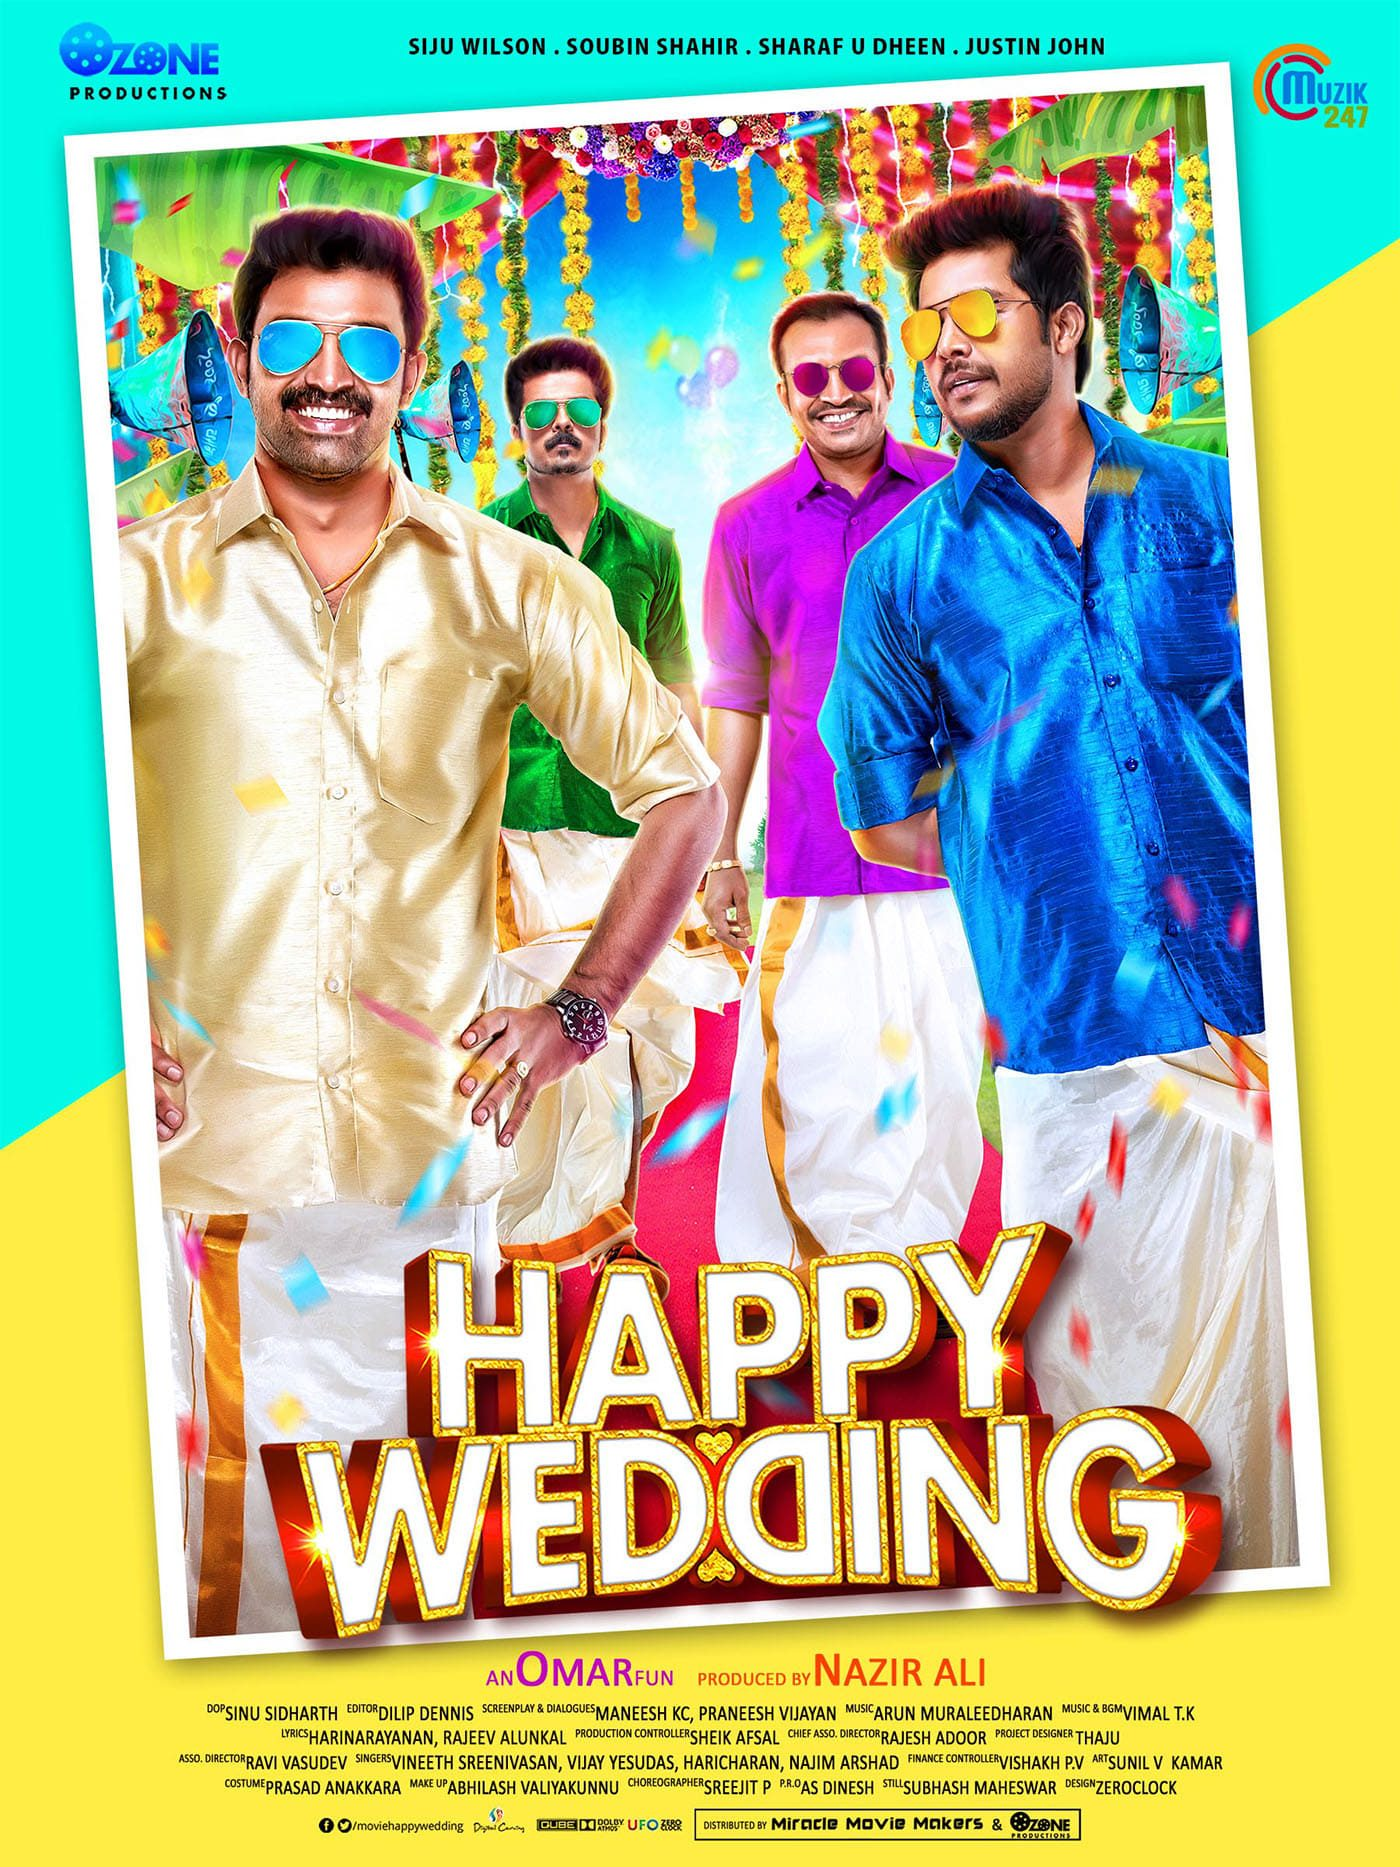 Happy Wedding Movie Streaming Online Watch on MX Player, Sun NXT